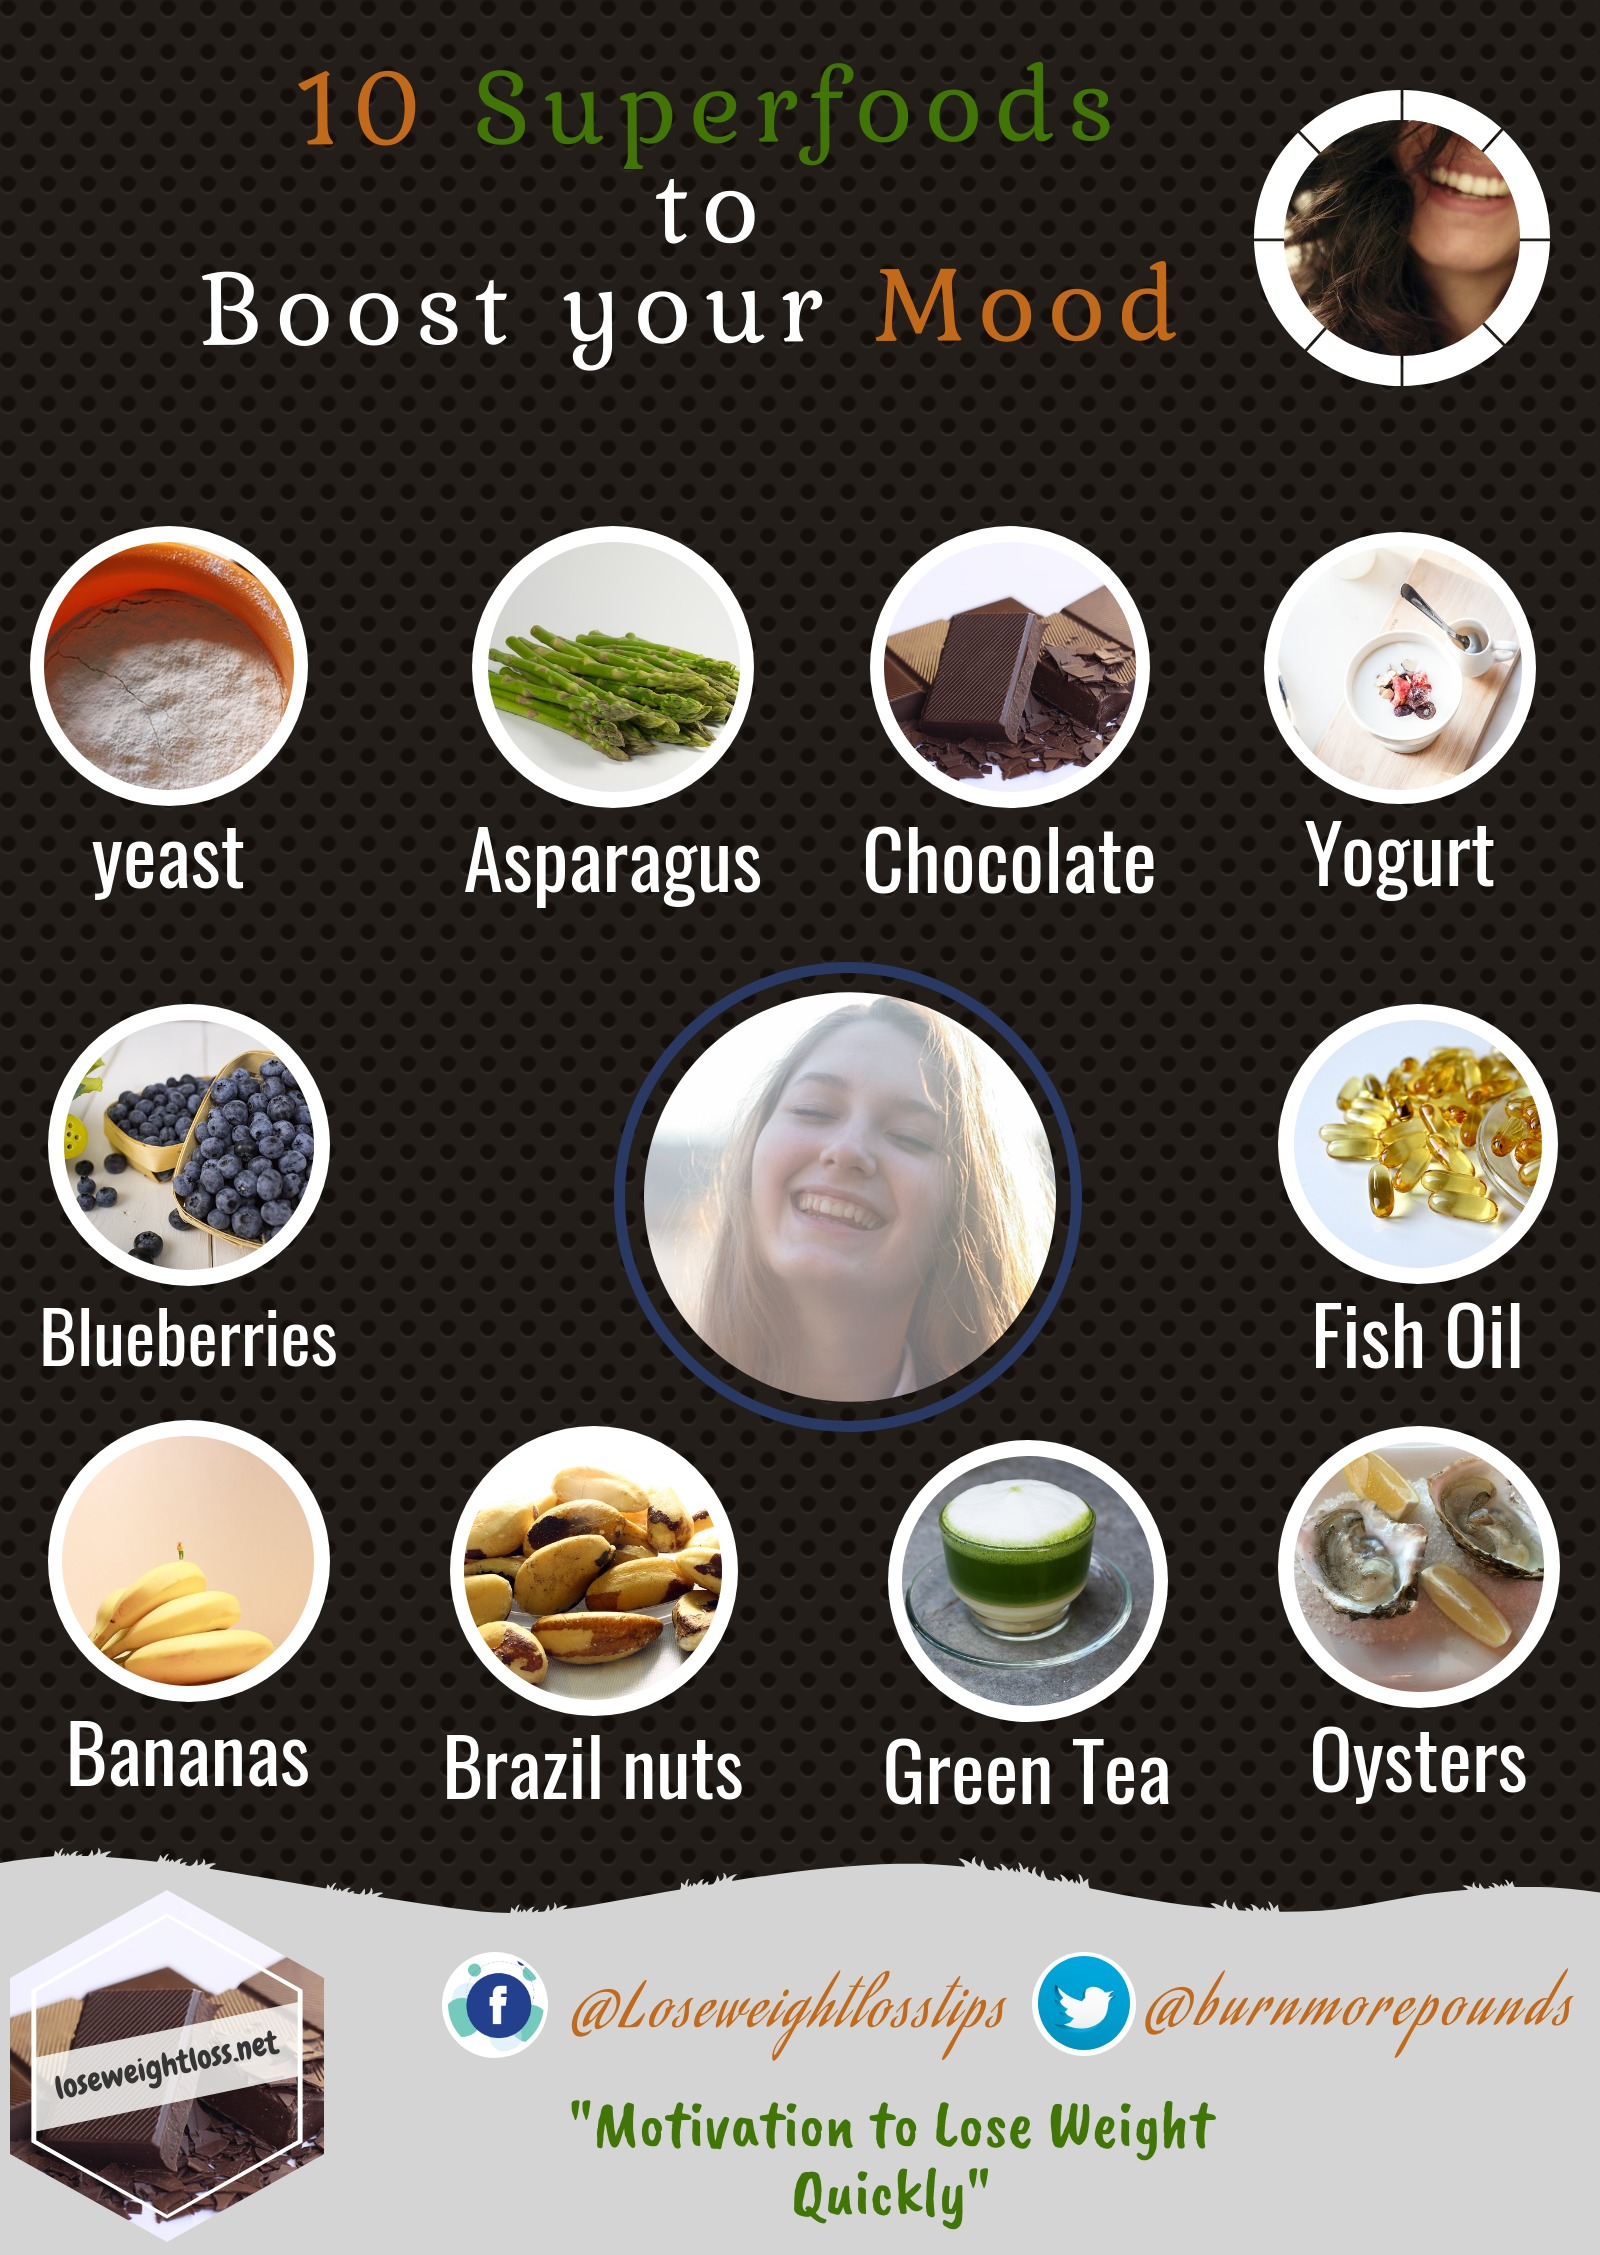 10 Superfood to boost your mood